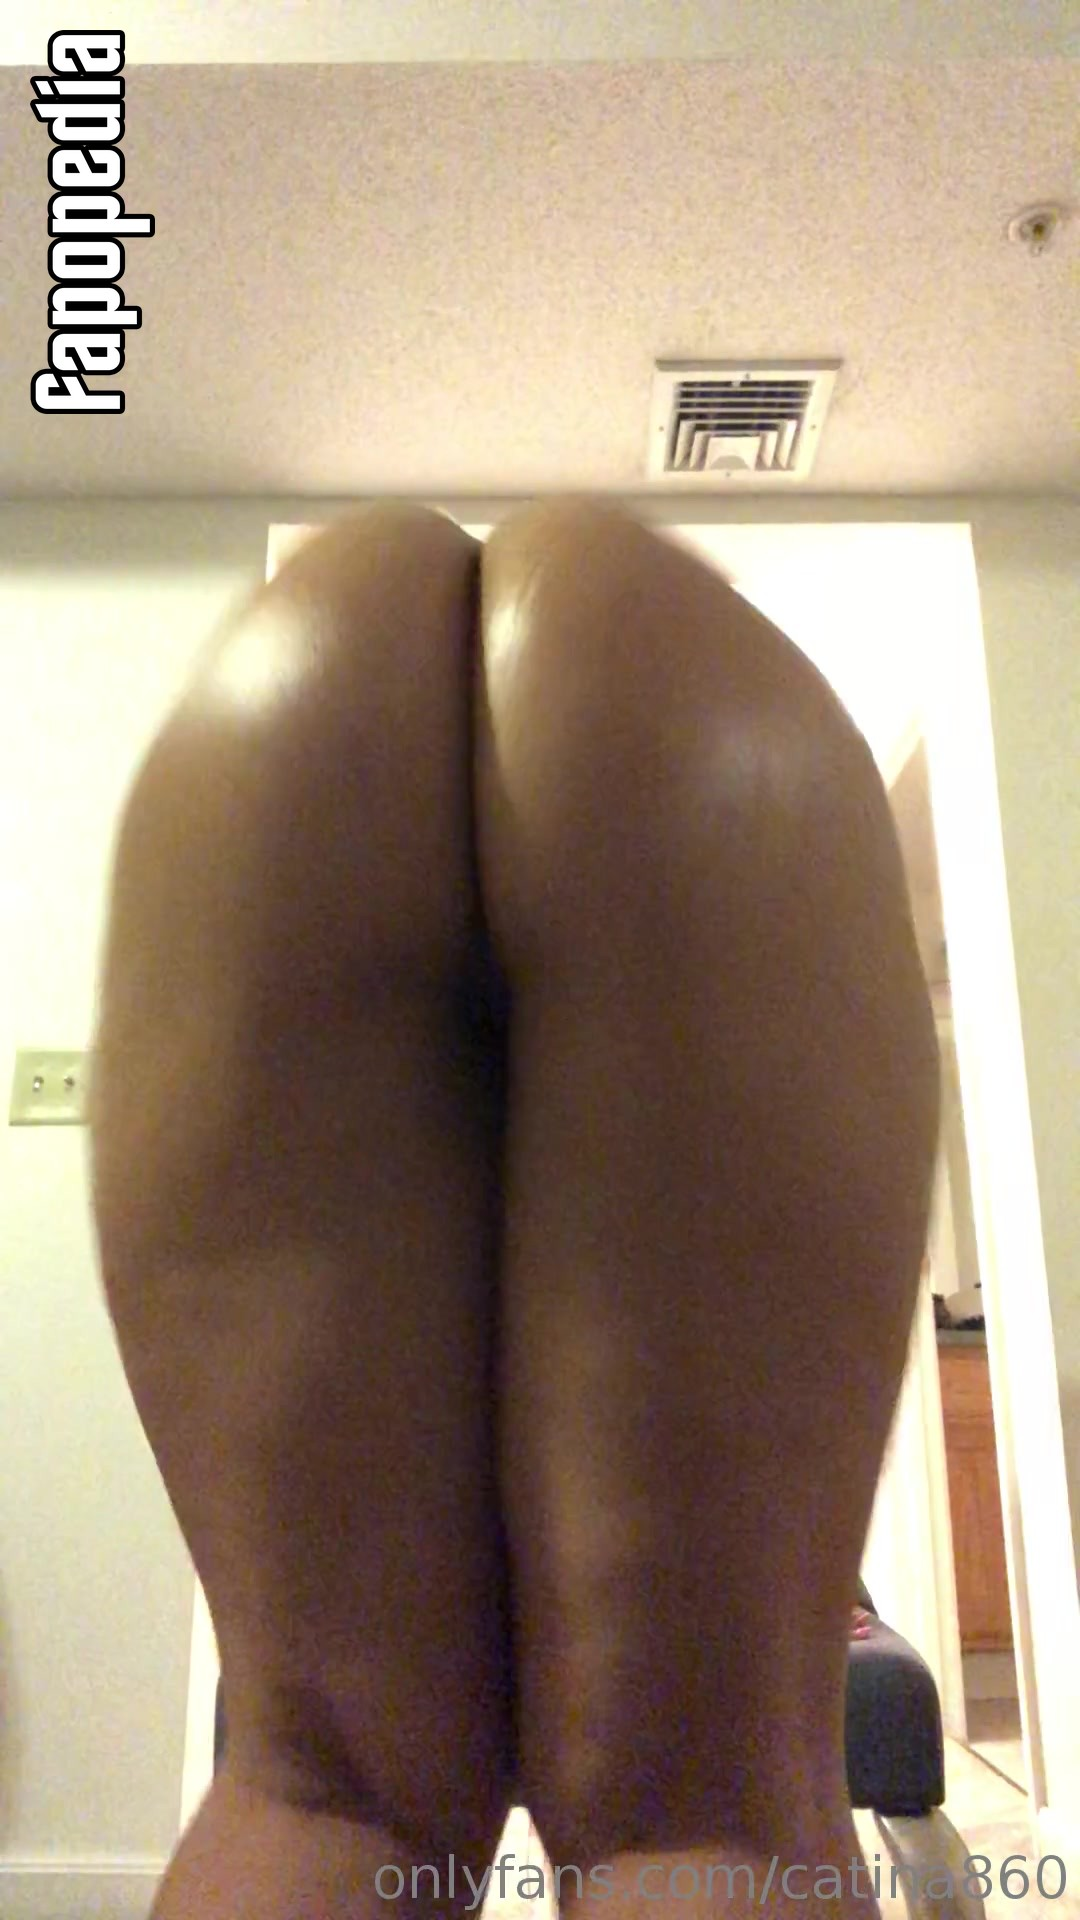 Catina860 Nude OnlyFans Leaks